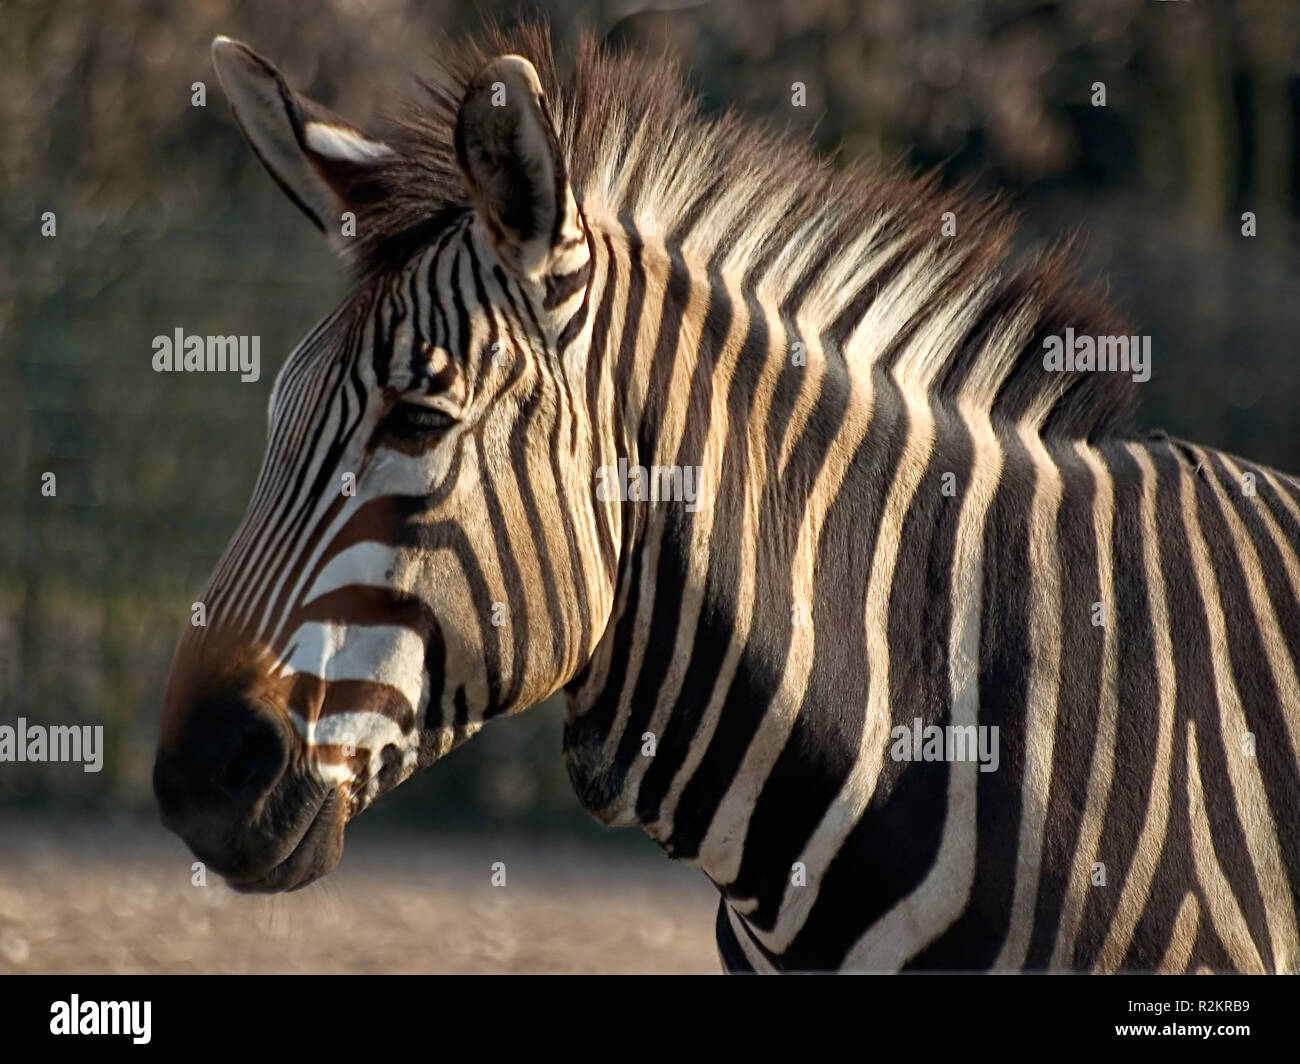 Black Belly Stripe Stock Photos   Black Belly Stripe Stock Images ... 71f6f422b